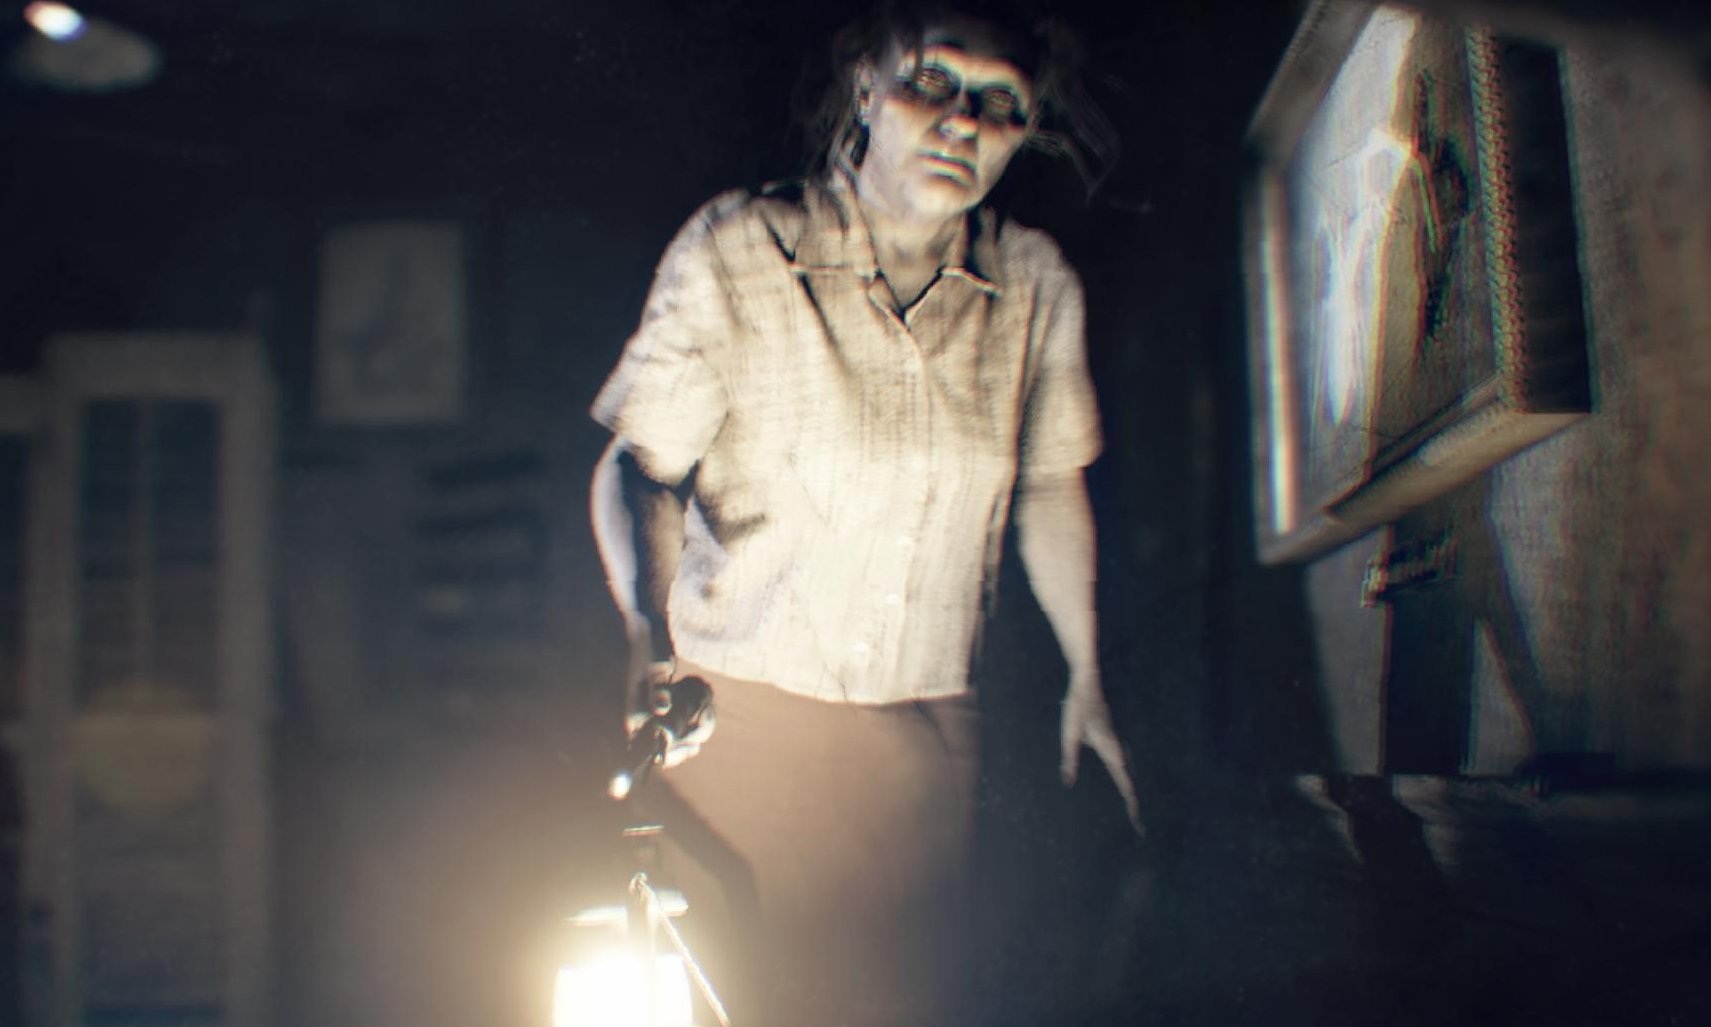 residentevil7_1